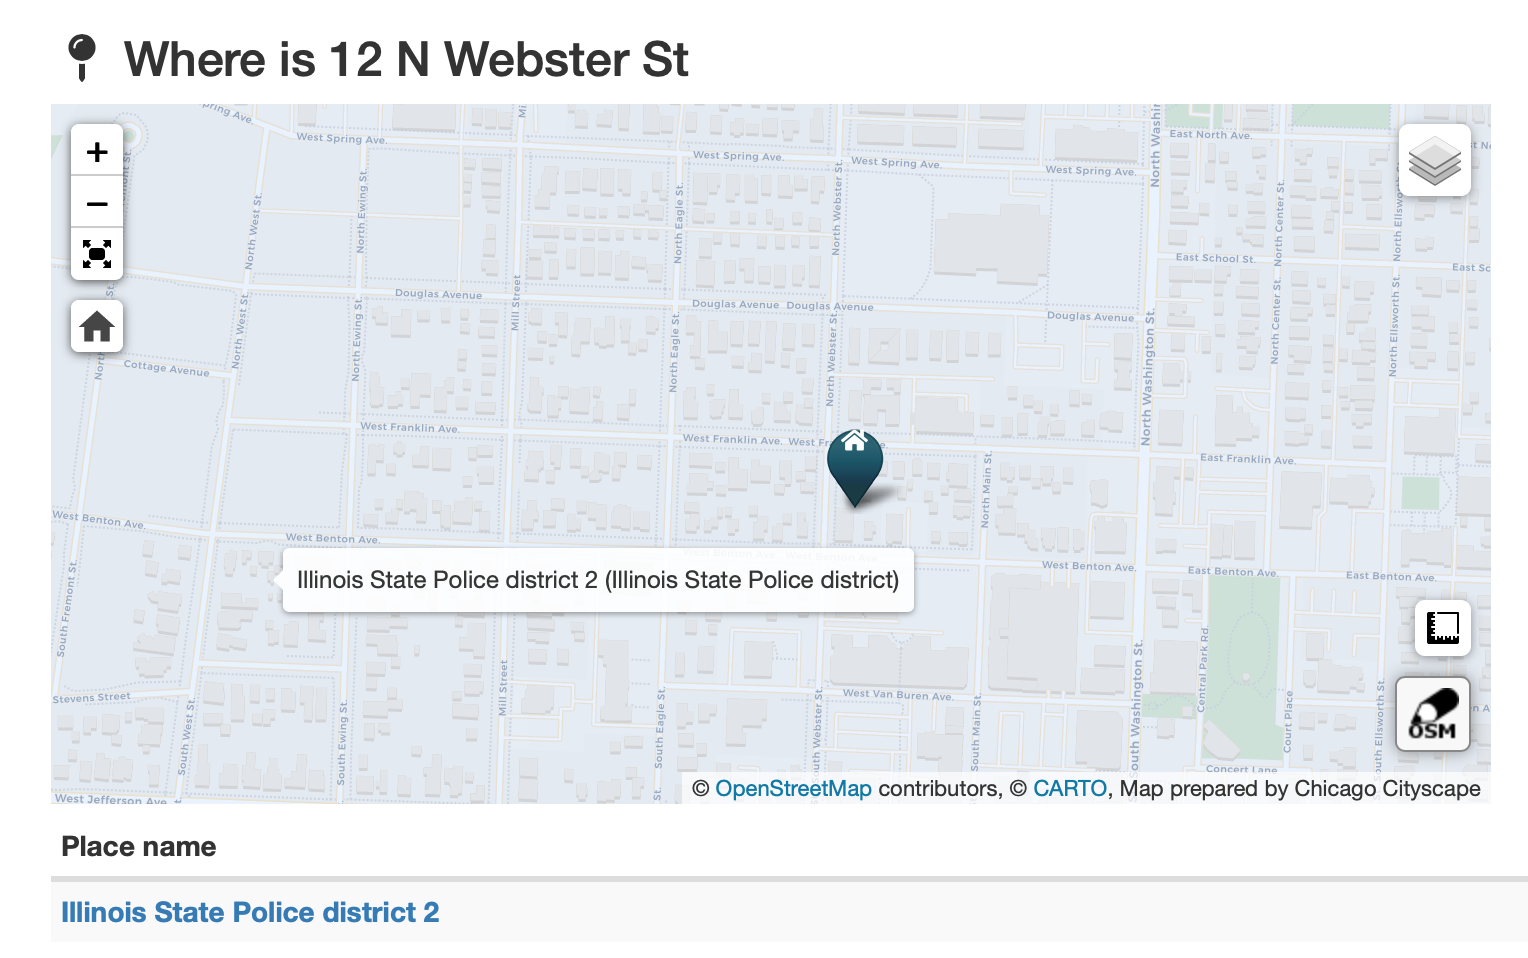 New Places: Illinois State Police districts - Chicago Cityscape